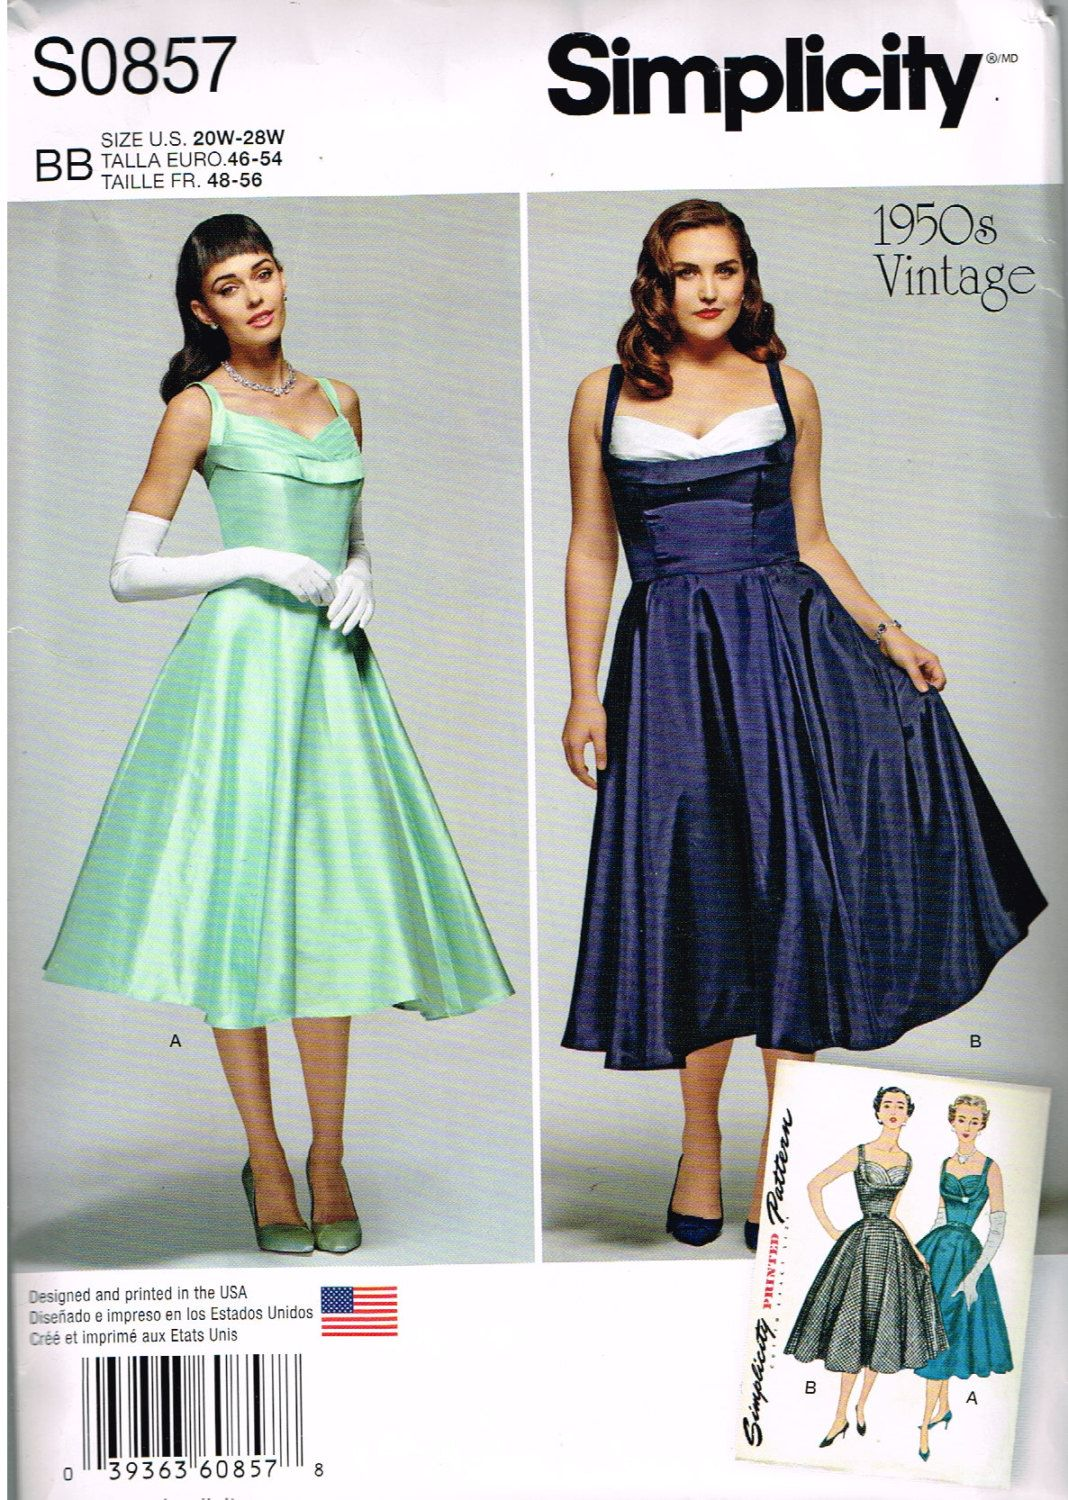 Indygo junction ij860 misses binding time apron one size simplicity 08571155 misses vintage 1950s dress sewing pattern size 20w jeuxipadfo Image collections